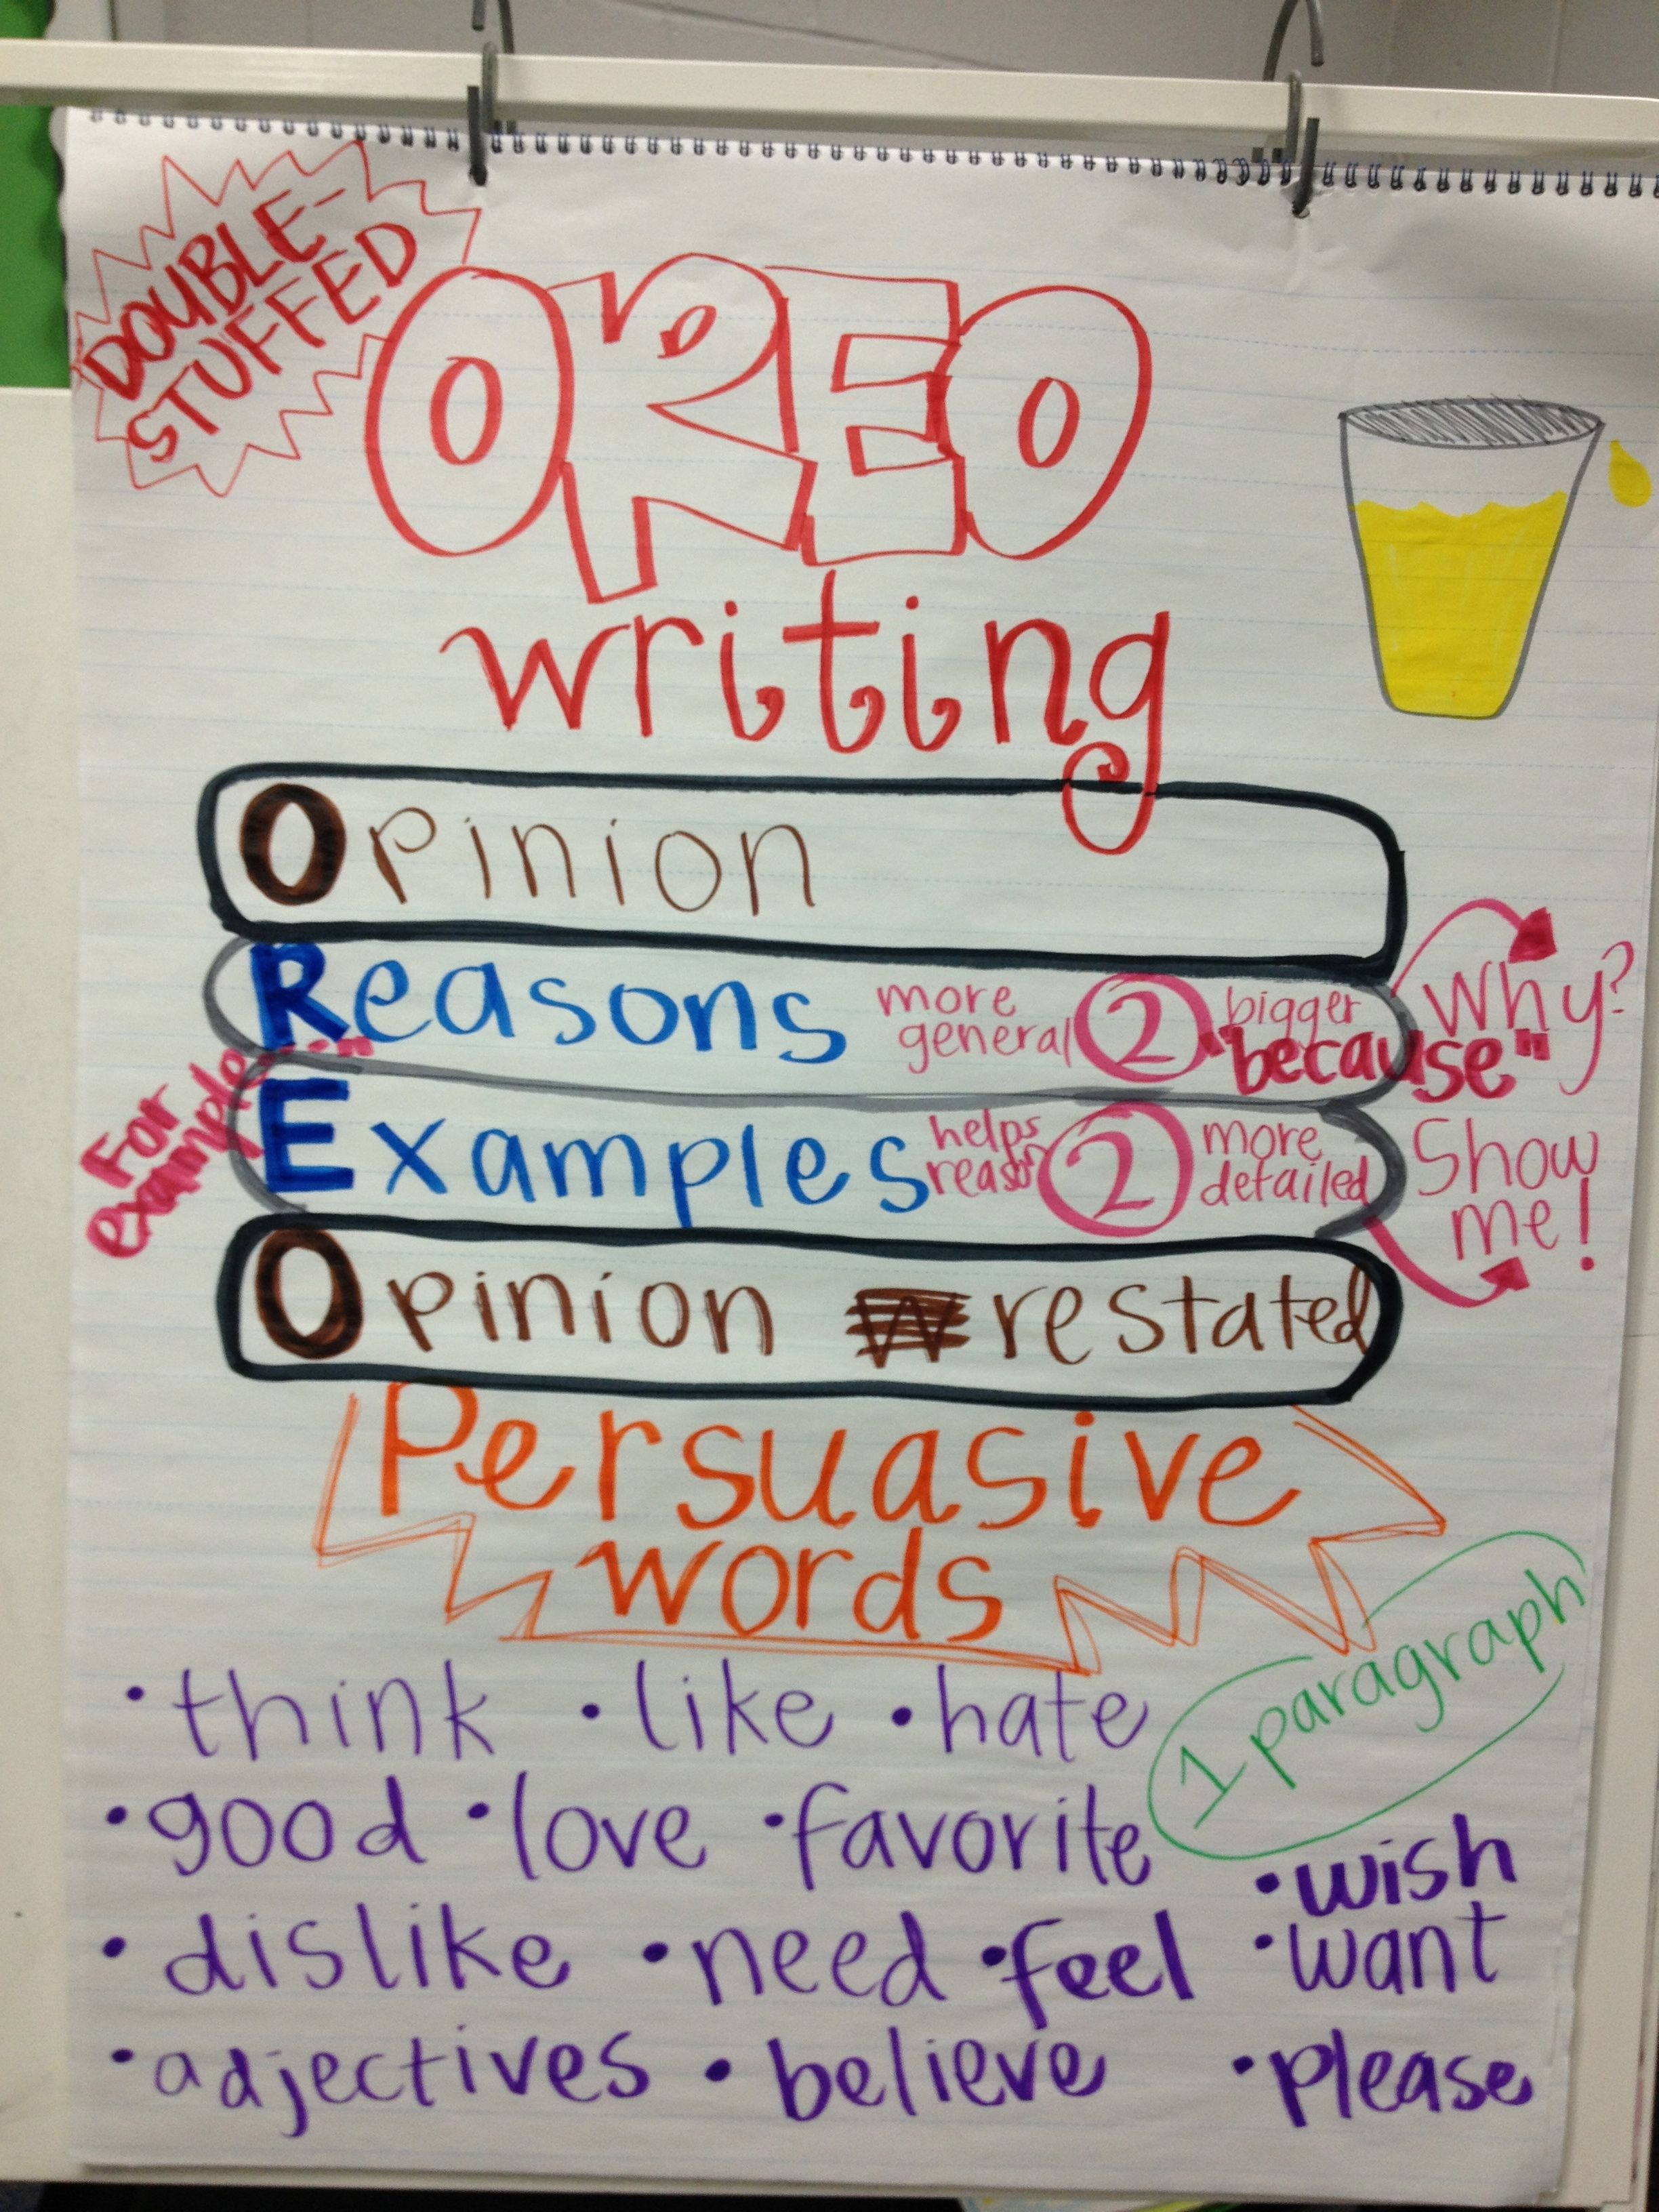 Anchor Chart For Oreo Opinion Writing Opinion Reasons Examples Opinion Restated